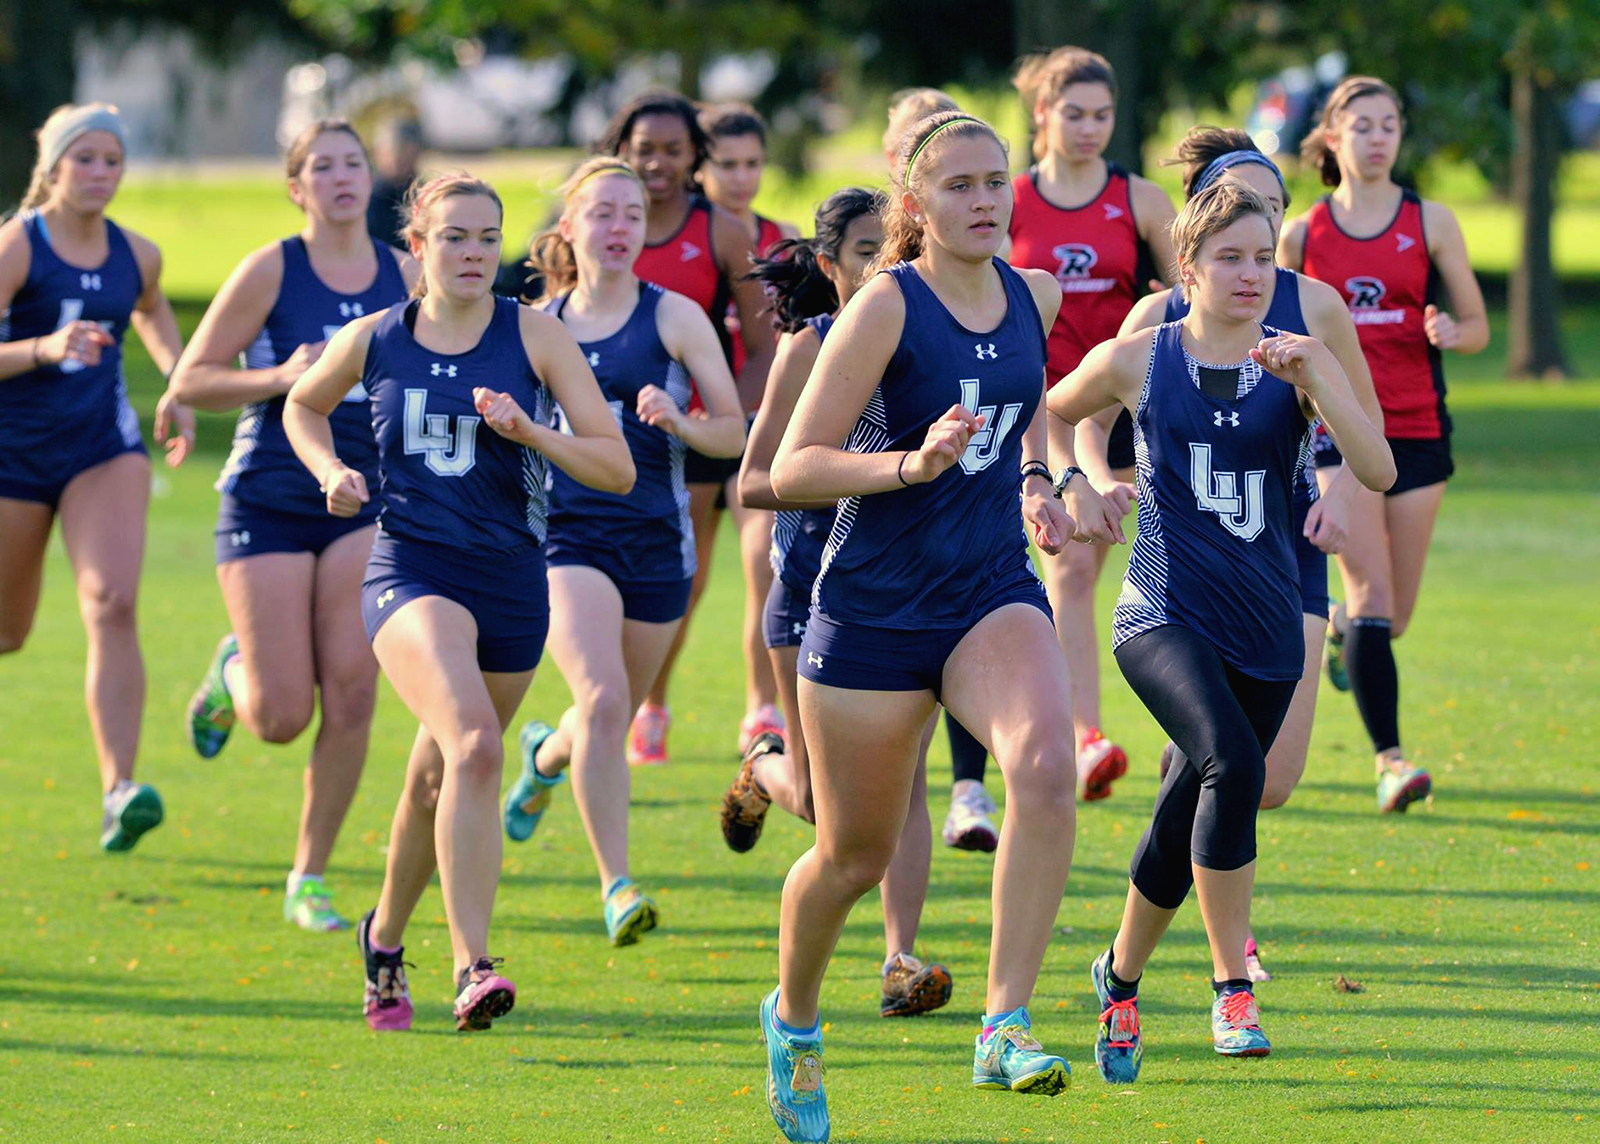 Women's Cross Country took second in the Gene Davis invitational on Oct. 8. Photo courtesy of Paul Wilke